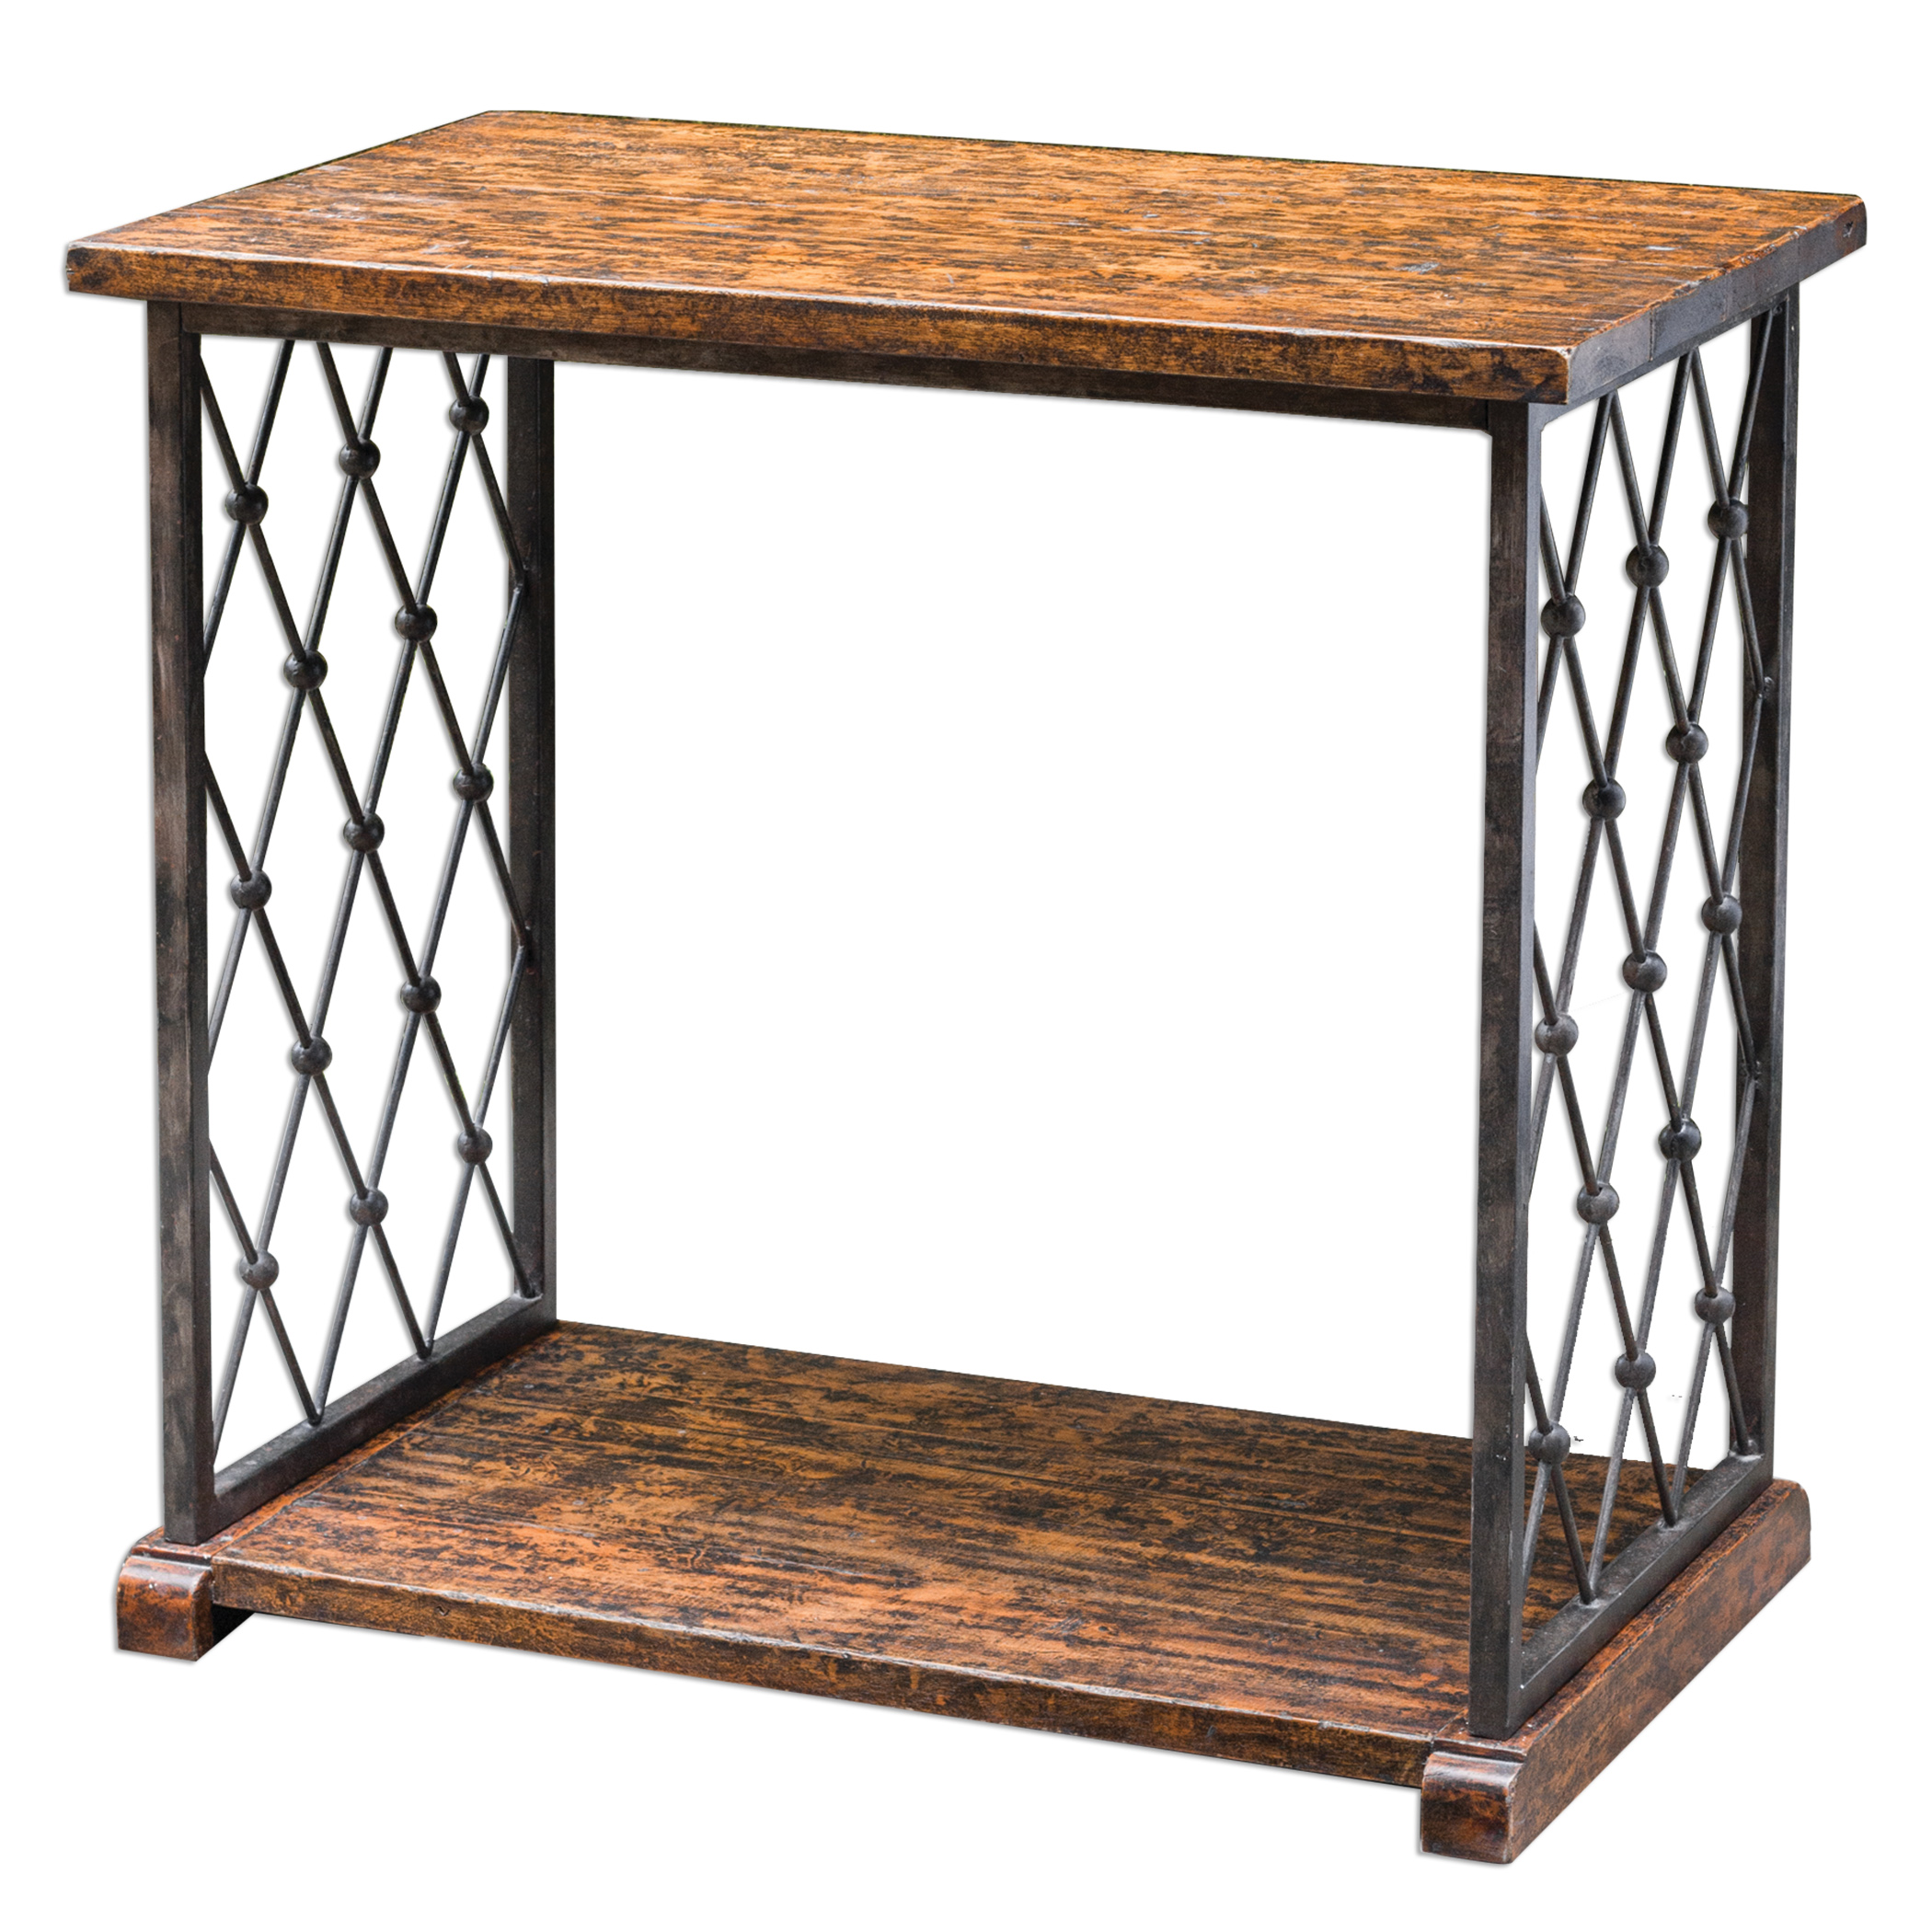 Uttermost Accent Furniture Castalia Aged Wood Side Table - Item Number: 25691